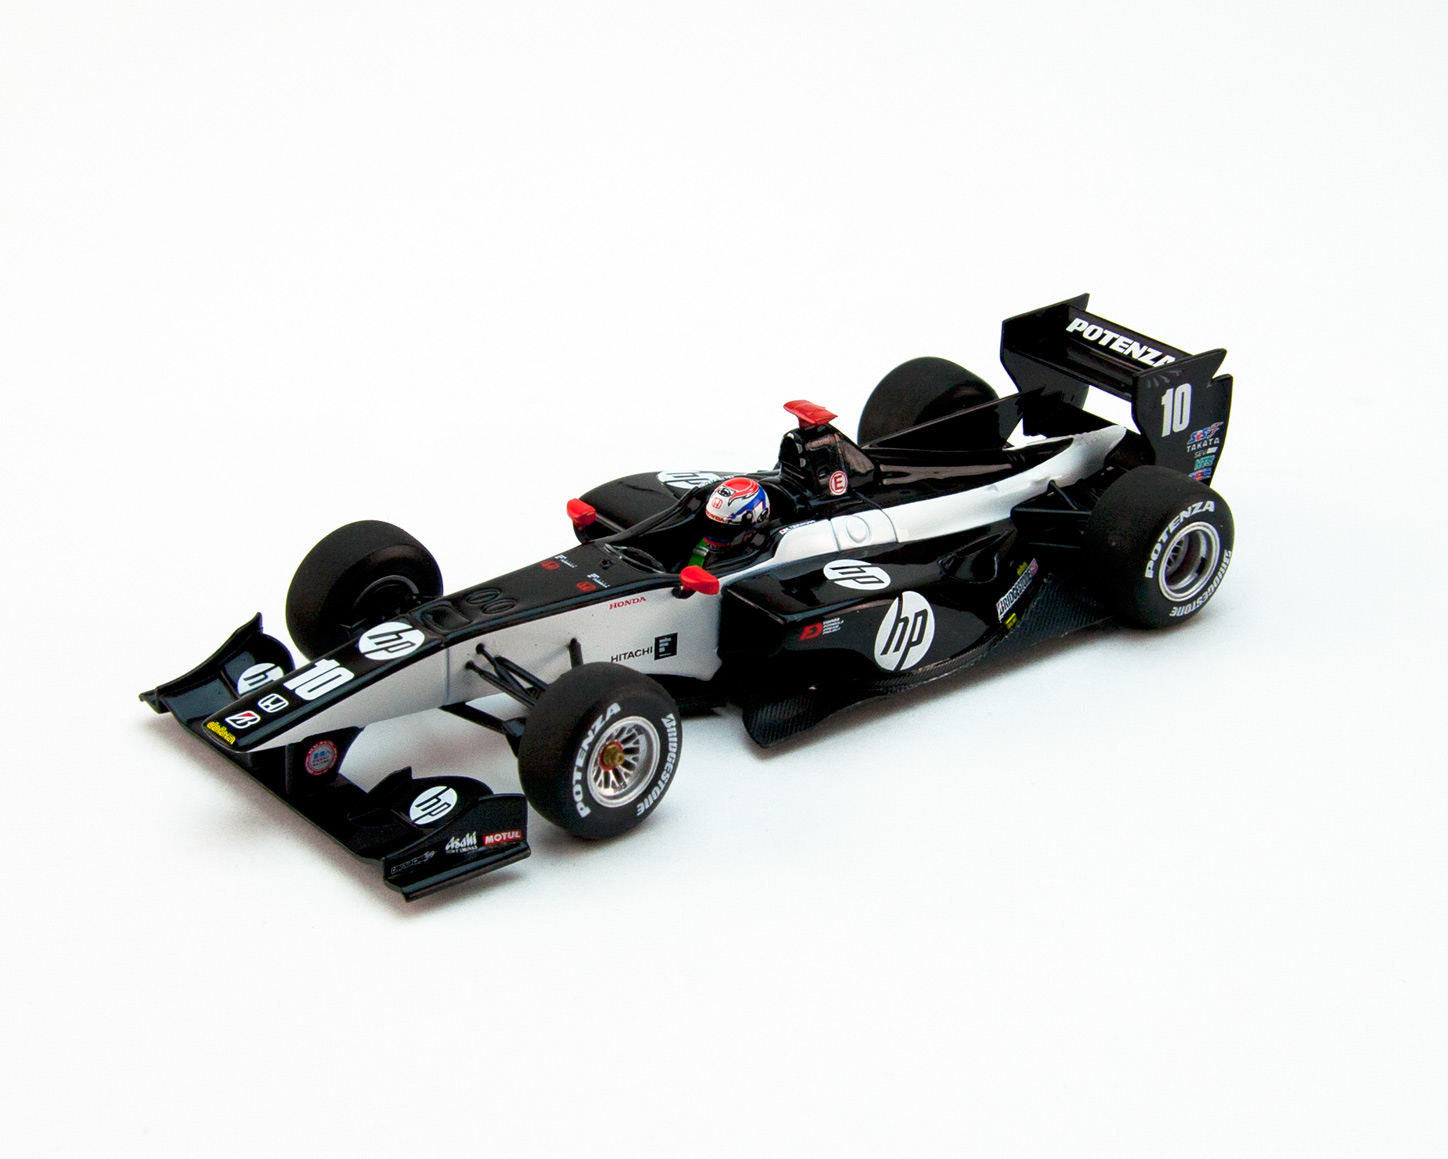 【45119】HP SF14 SUPER FORMULA 2014 No.10